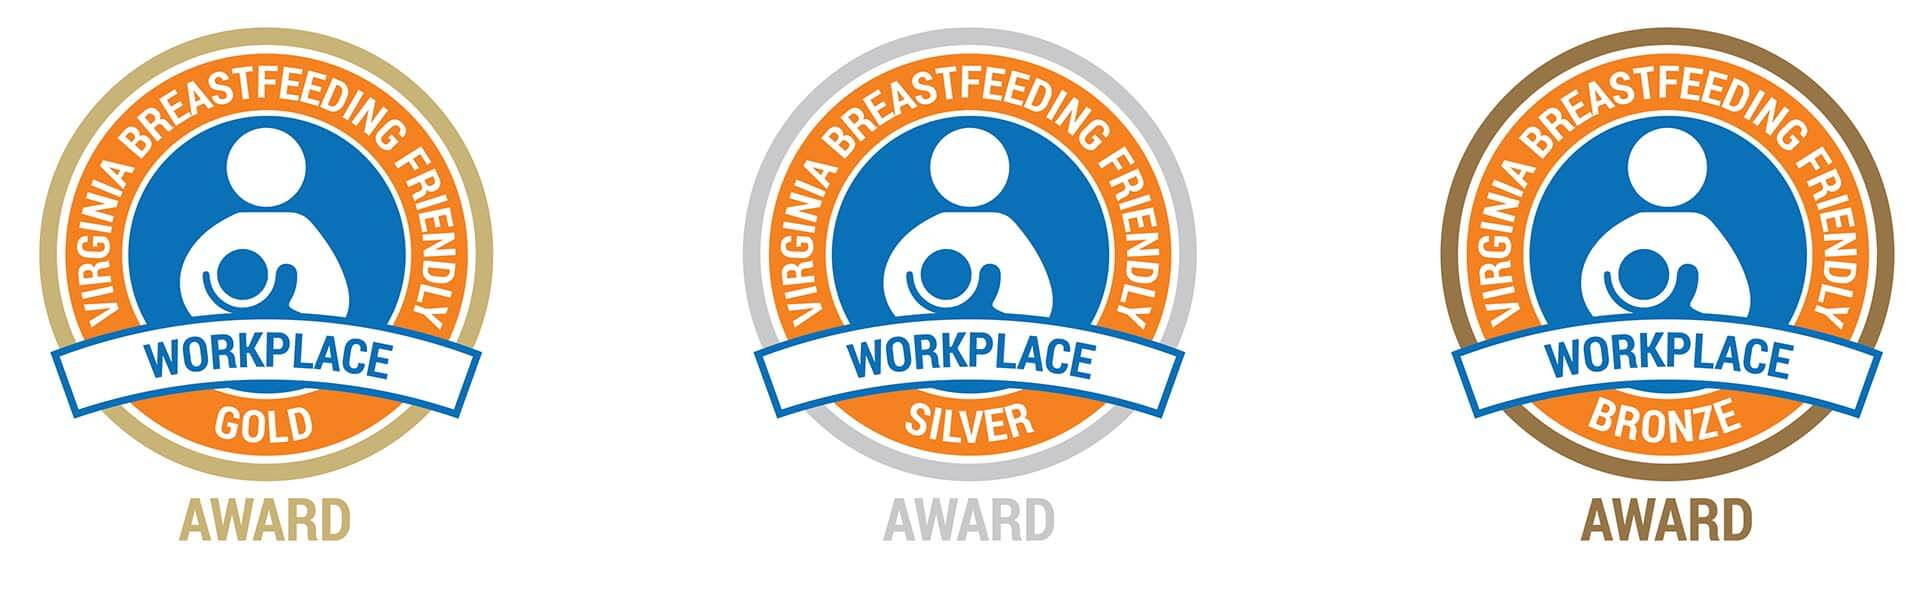 Virginia Breastfeeding Recognition Program Awards